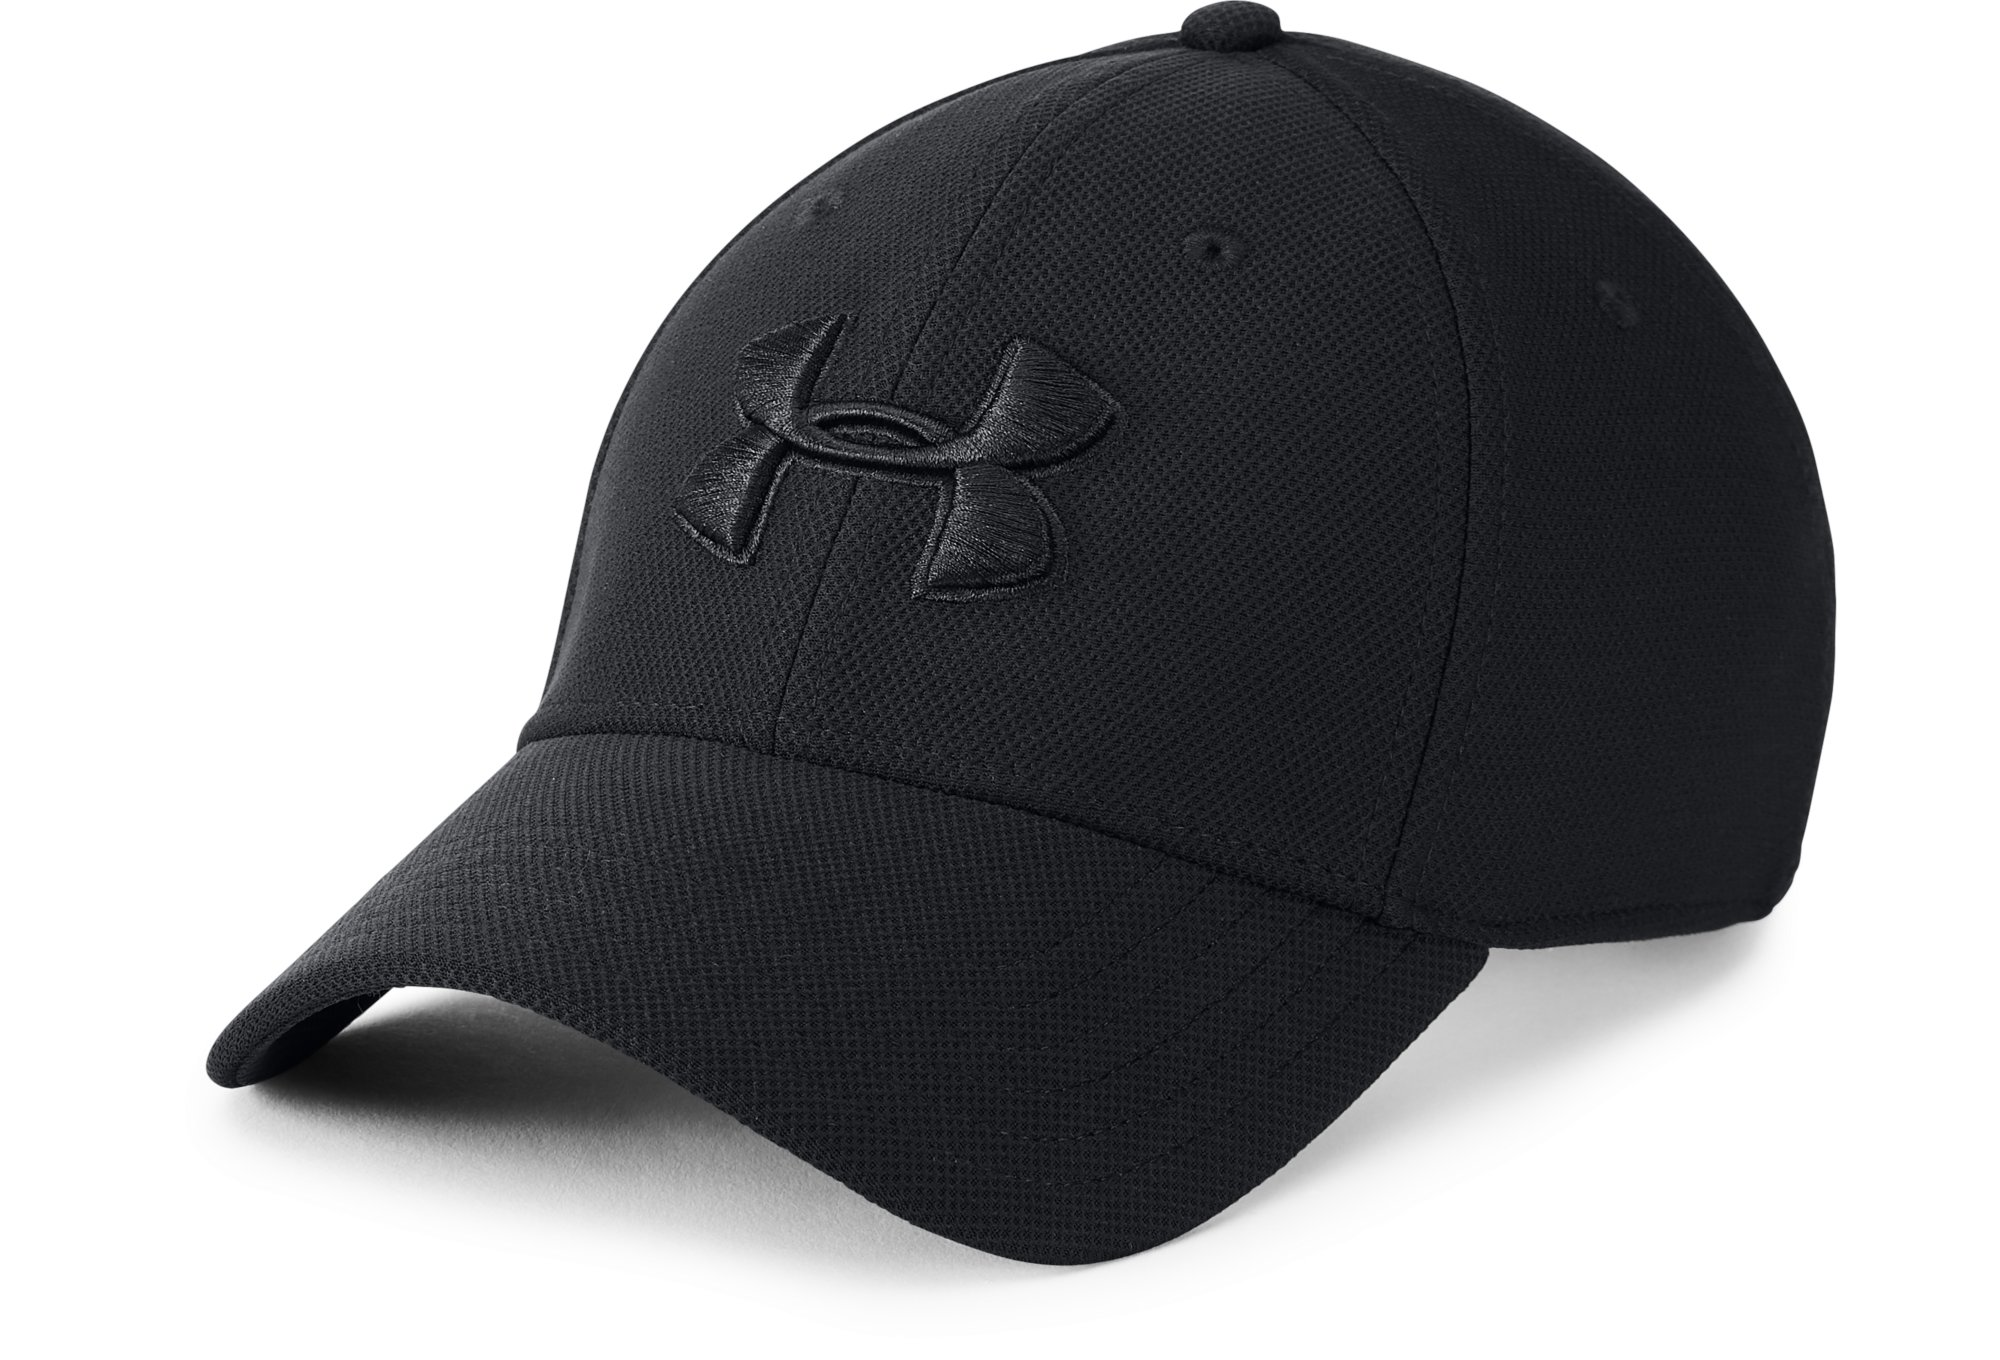 1a10fd64630 Under Armour Blitzing 3.0 Cap Black